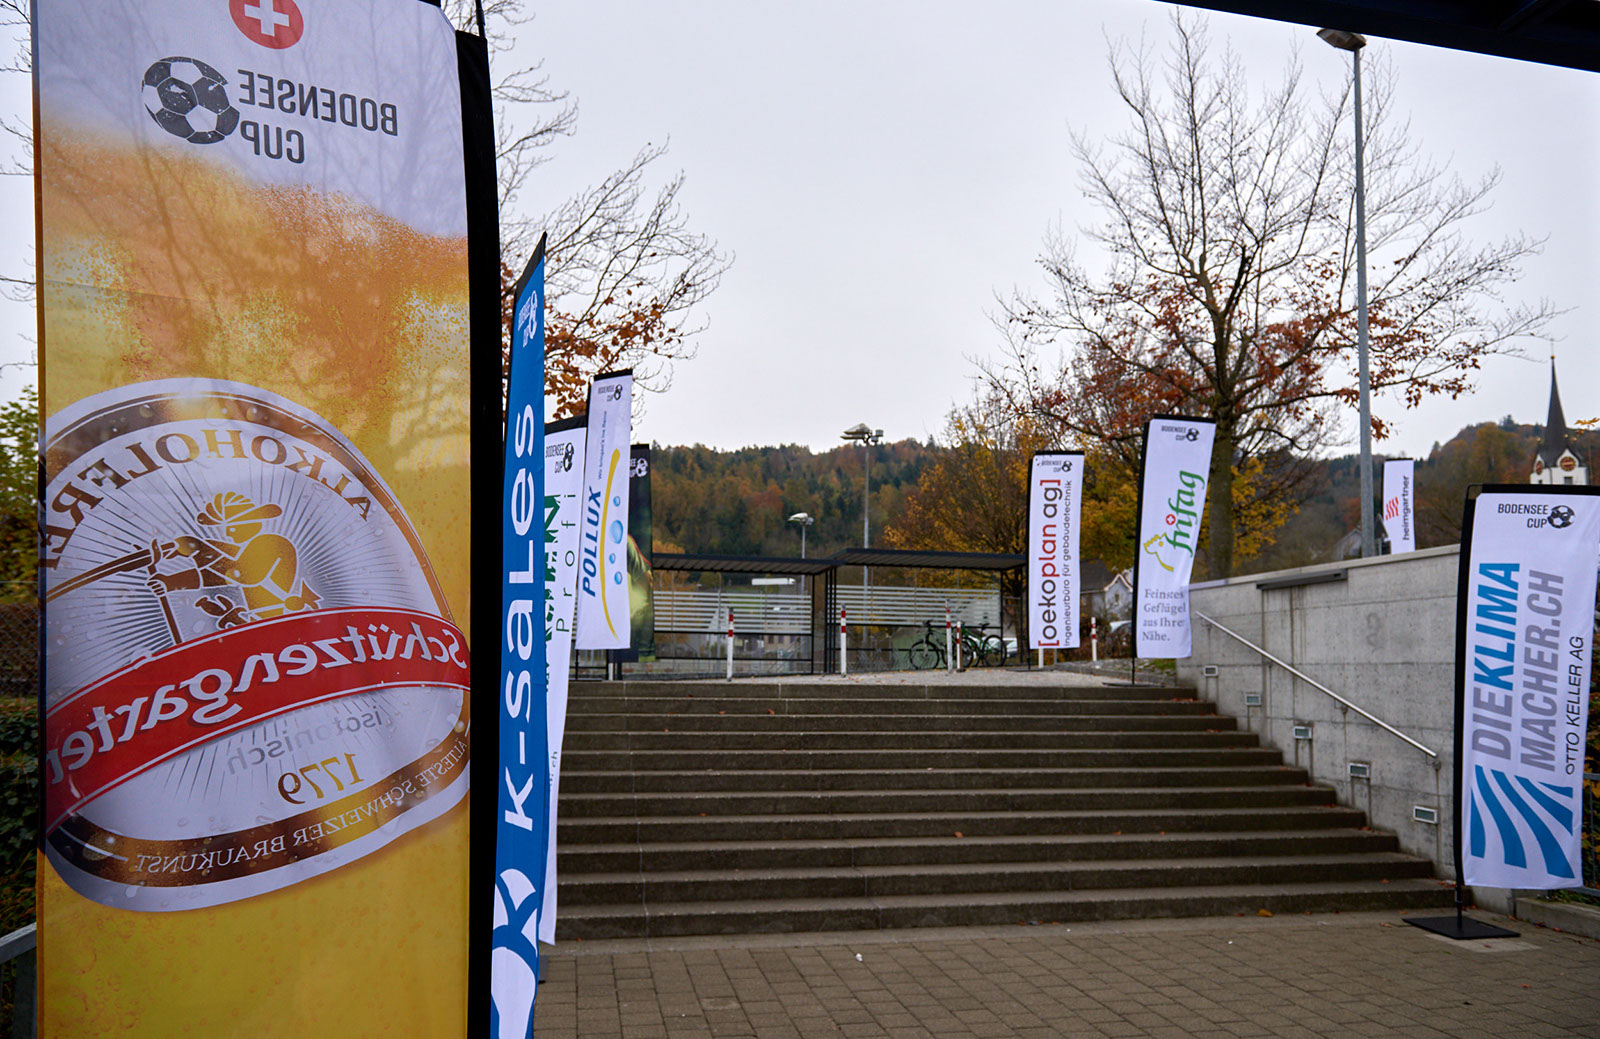 Bodensee-Cup_20171110_155012.jpg